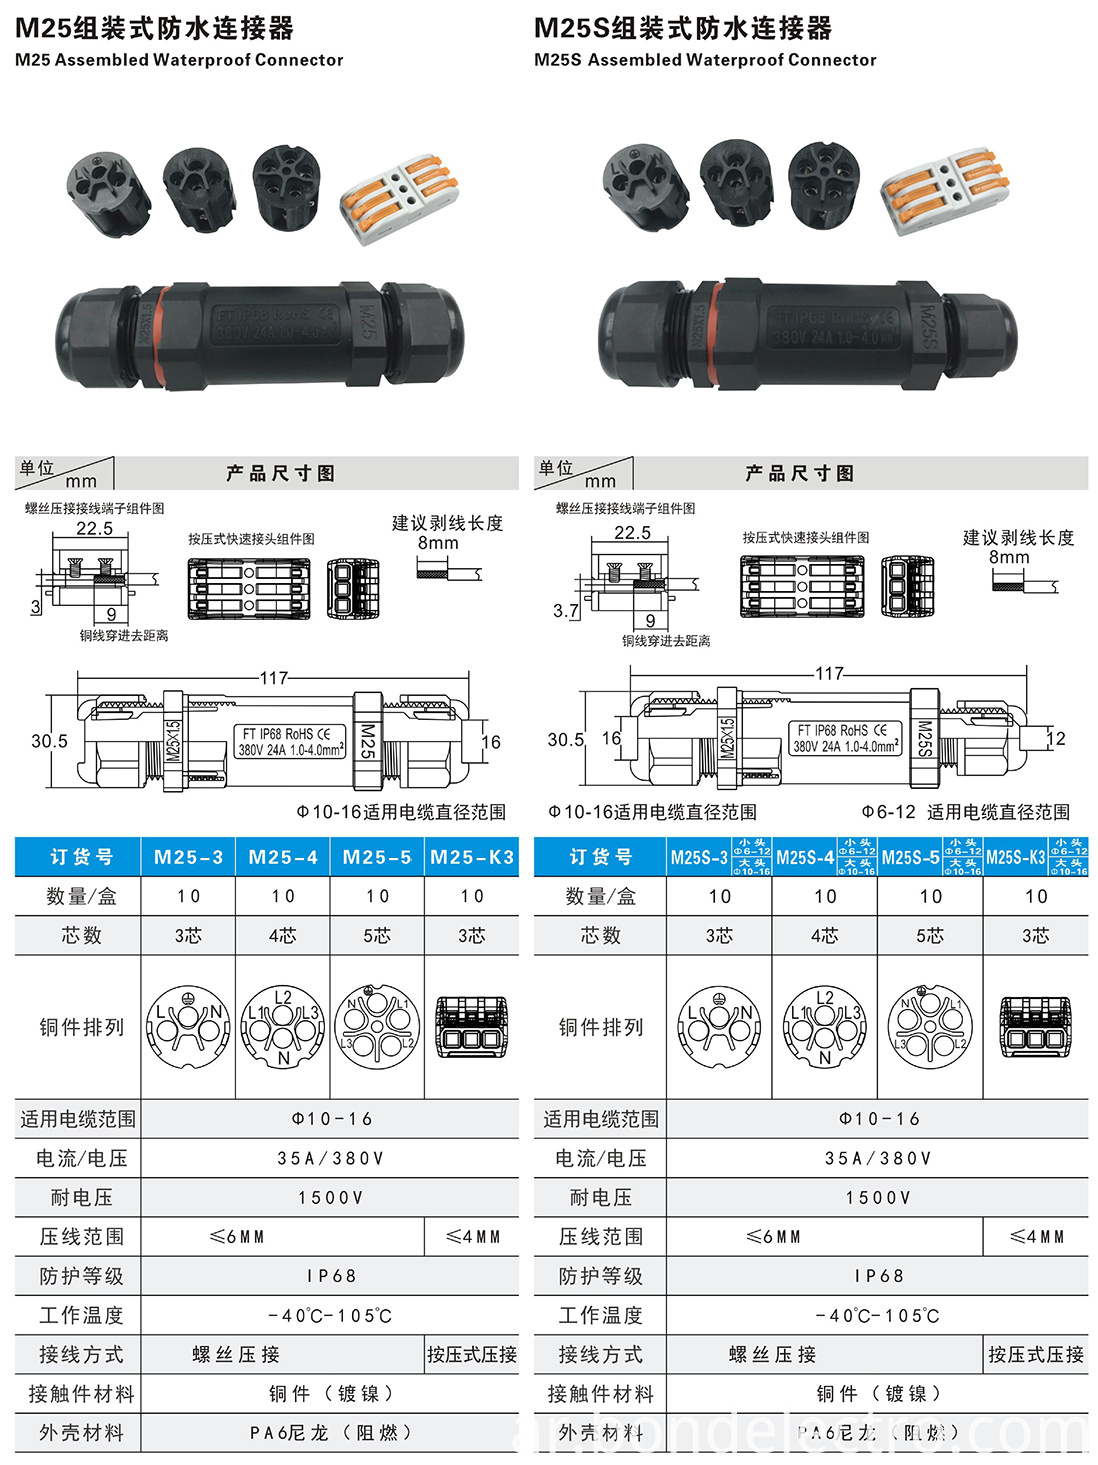 M Series Assembled Waterproof Connector Instruction-11